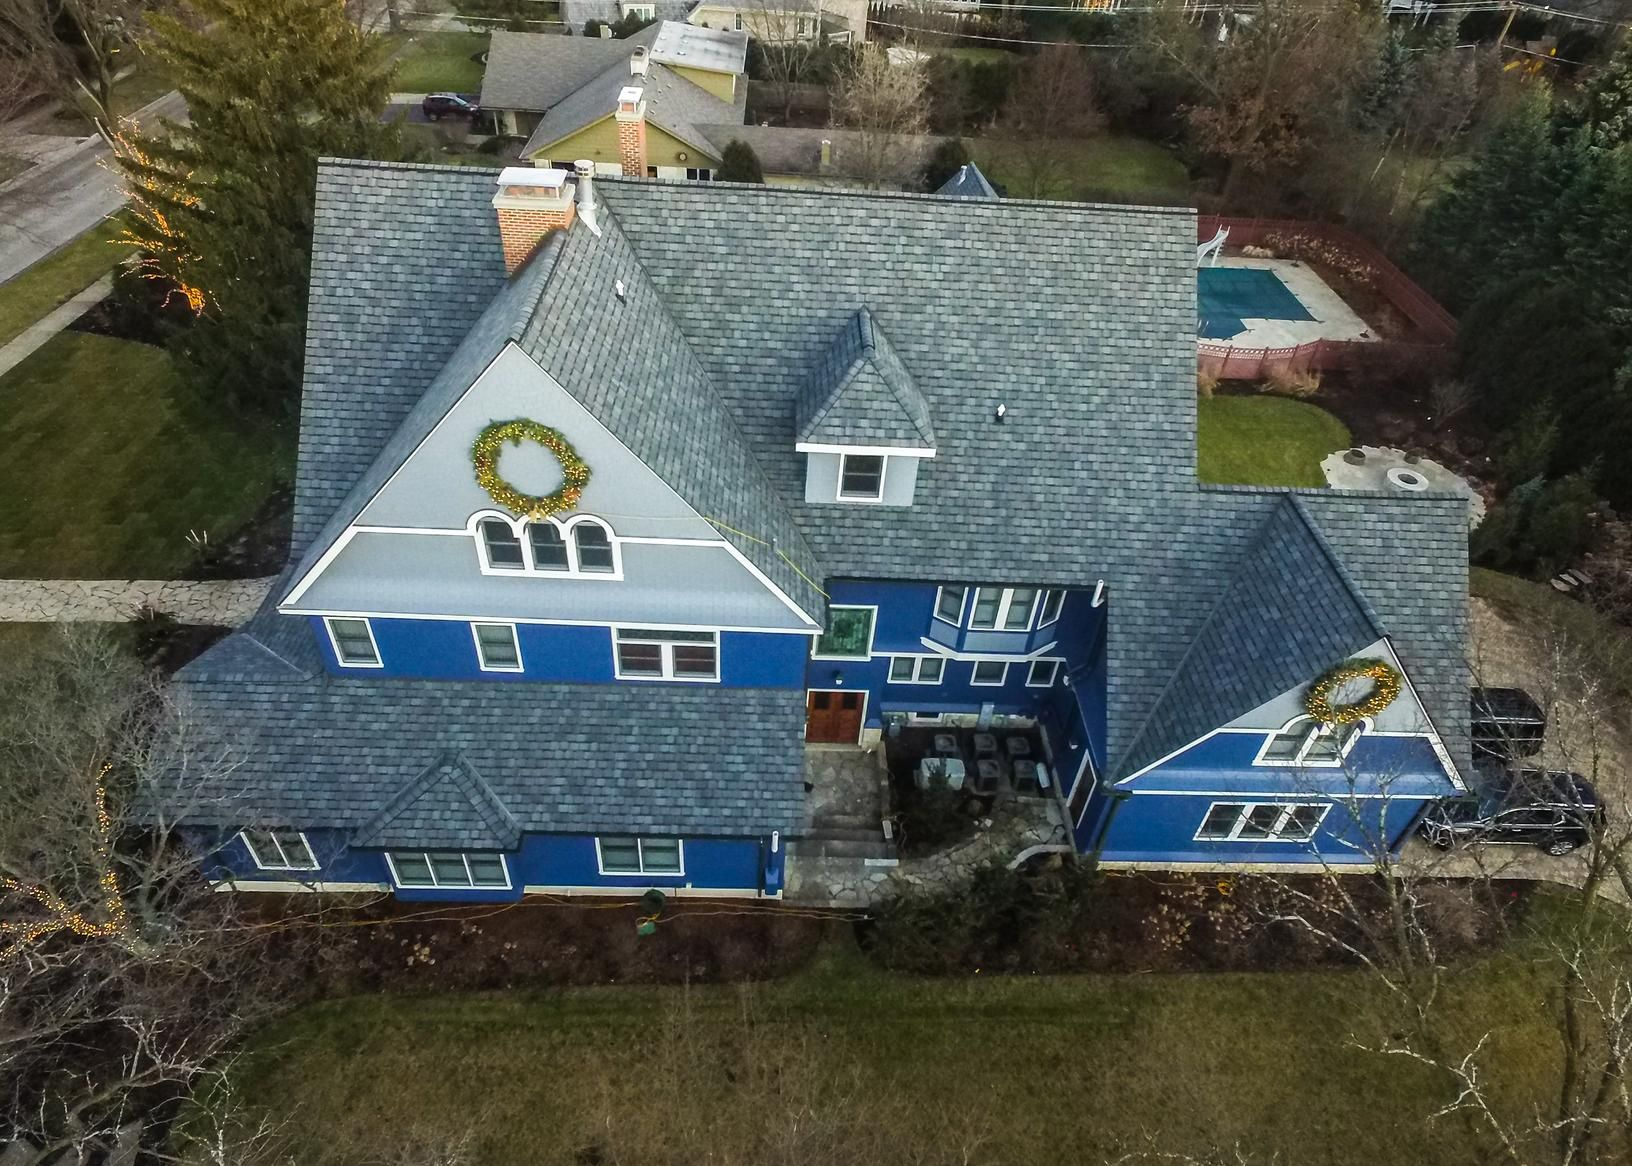 Pros Cons Of Certainteed Shingles Costs Unbiased Certainteed Roofing Reviews In 2020 Certainteed Shingles Certainteed Shingling